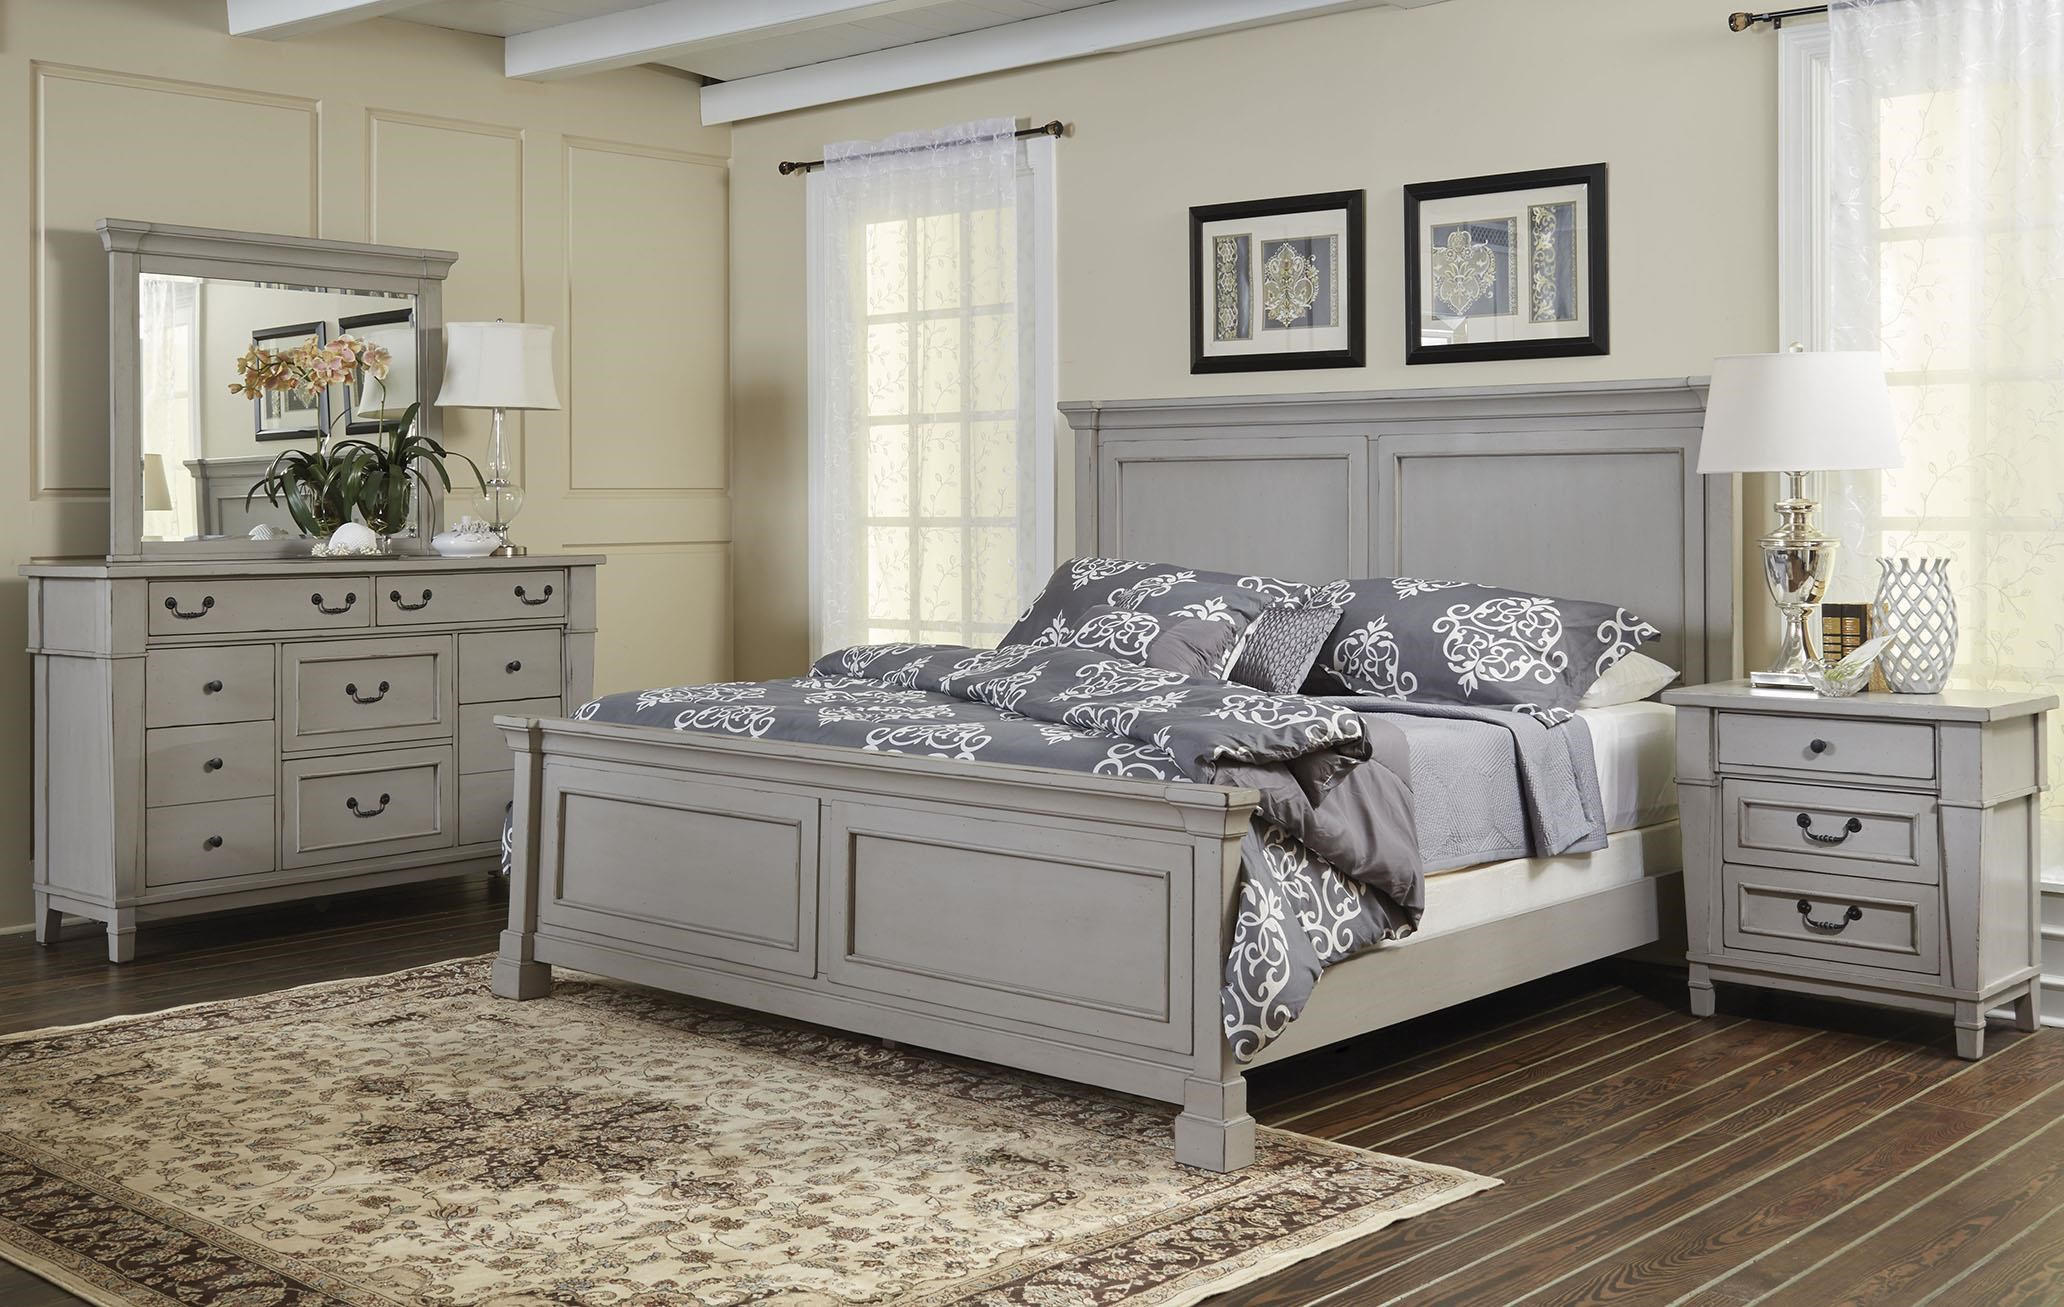 Queen Panel Bed Dresser, Mirror, 3 DWR Nightstand